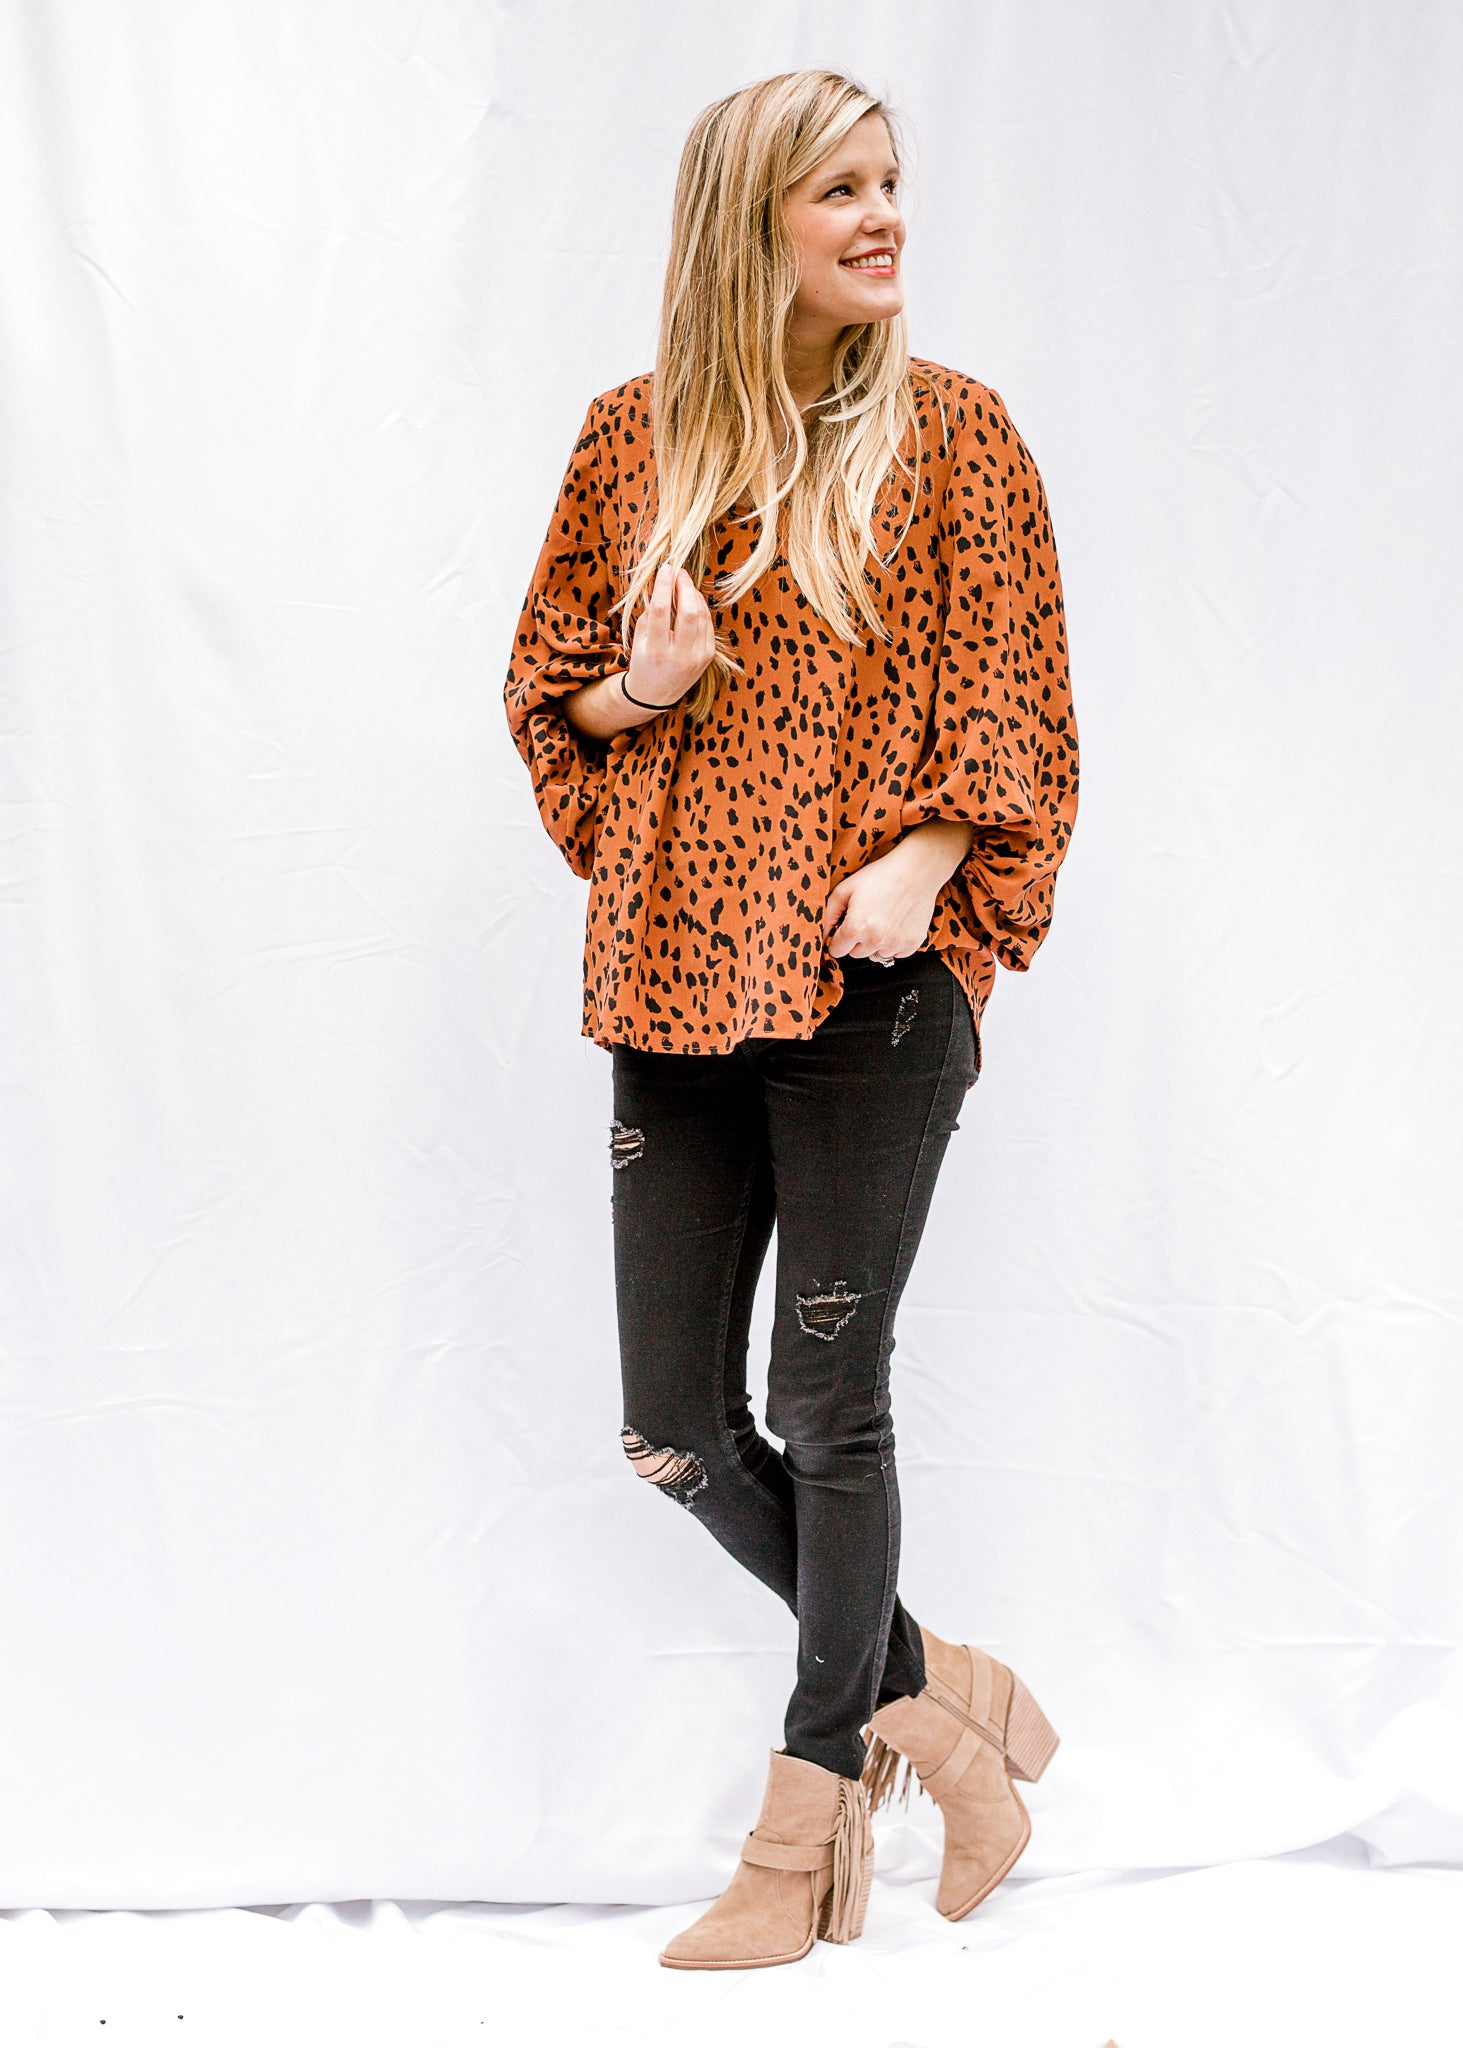 Toffee Leopard Top